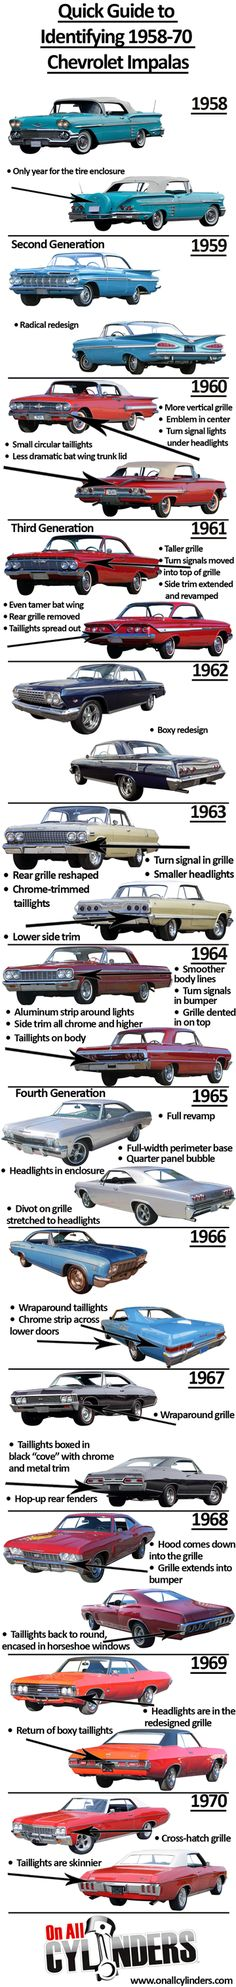 Vehicle Identification Chart for Chevy Impalas 1958-1970